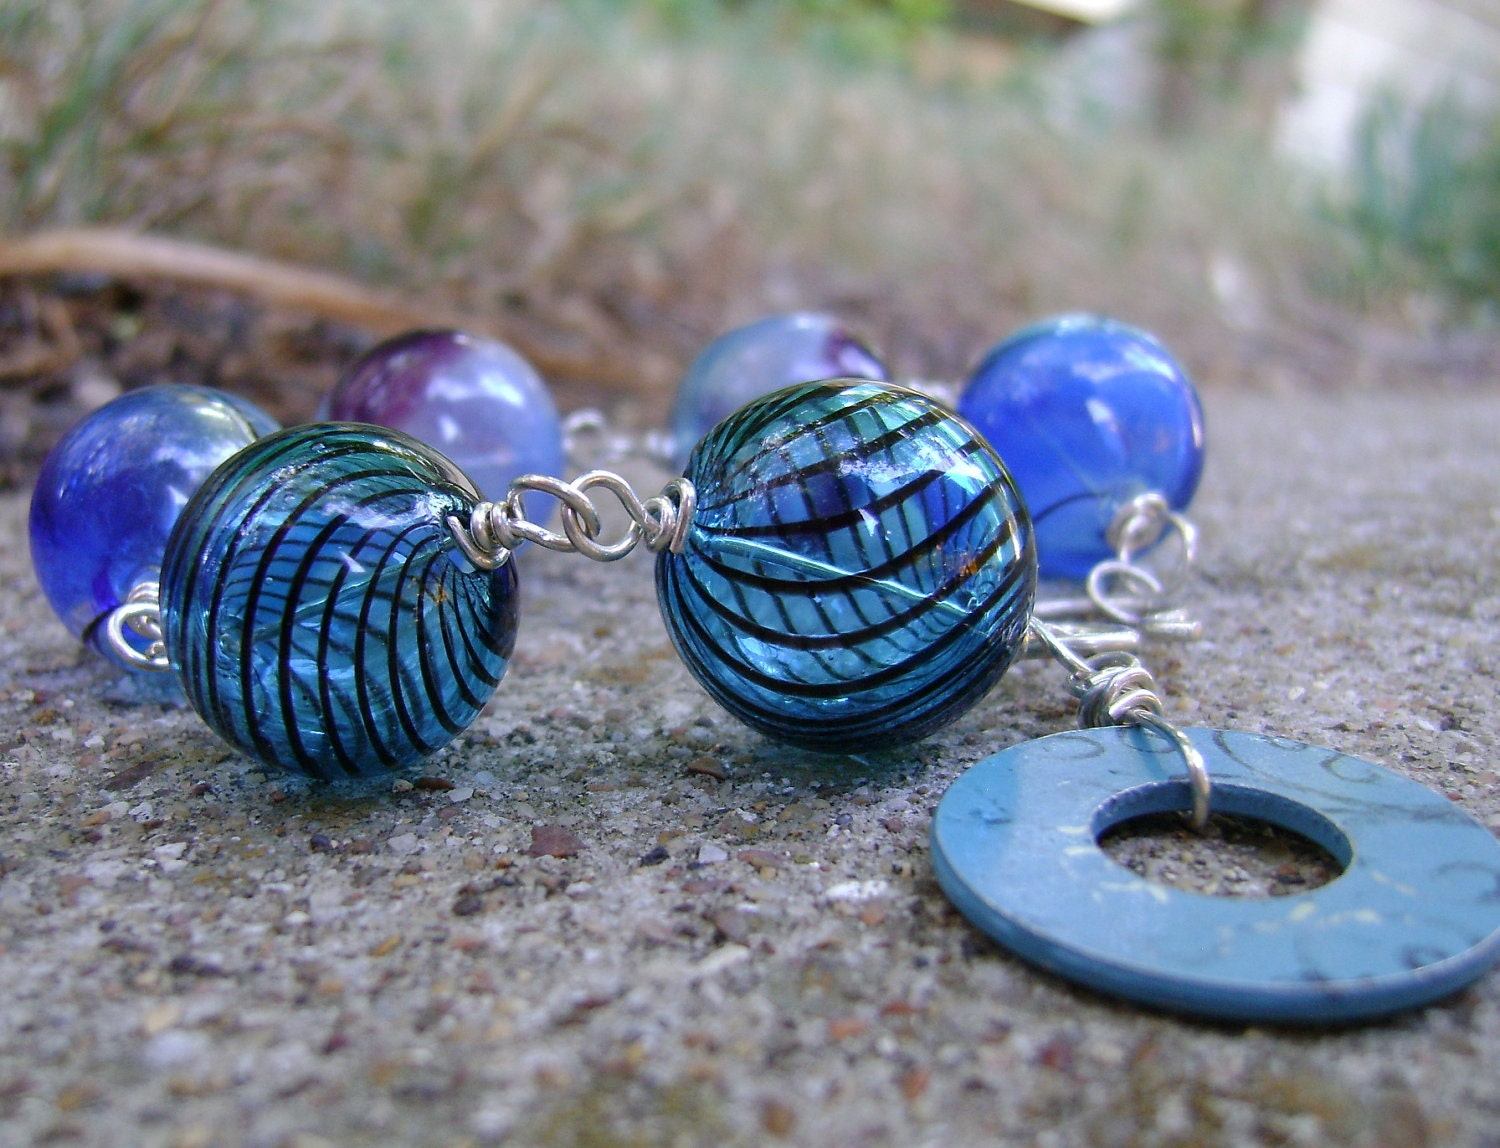 Oblio - blown glass, upcycled washer and sterling bracelet - ready to ship - jgrumbling